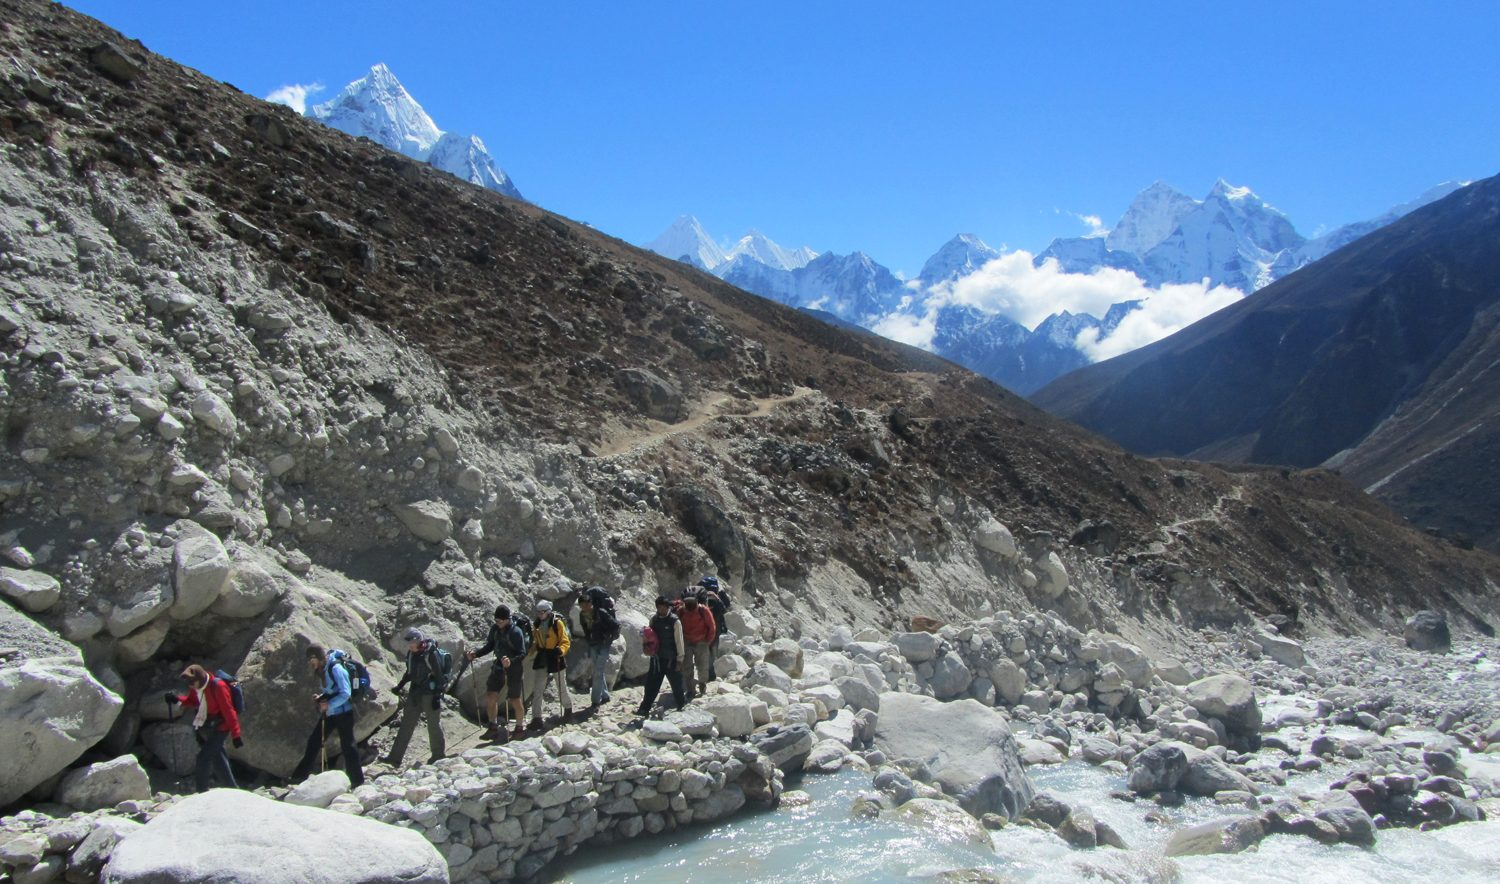 Enroute to Everest Base Camp, Everest Base Camp Trek